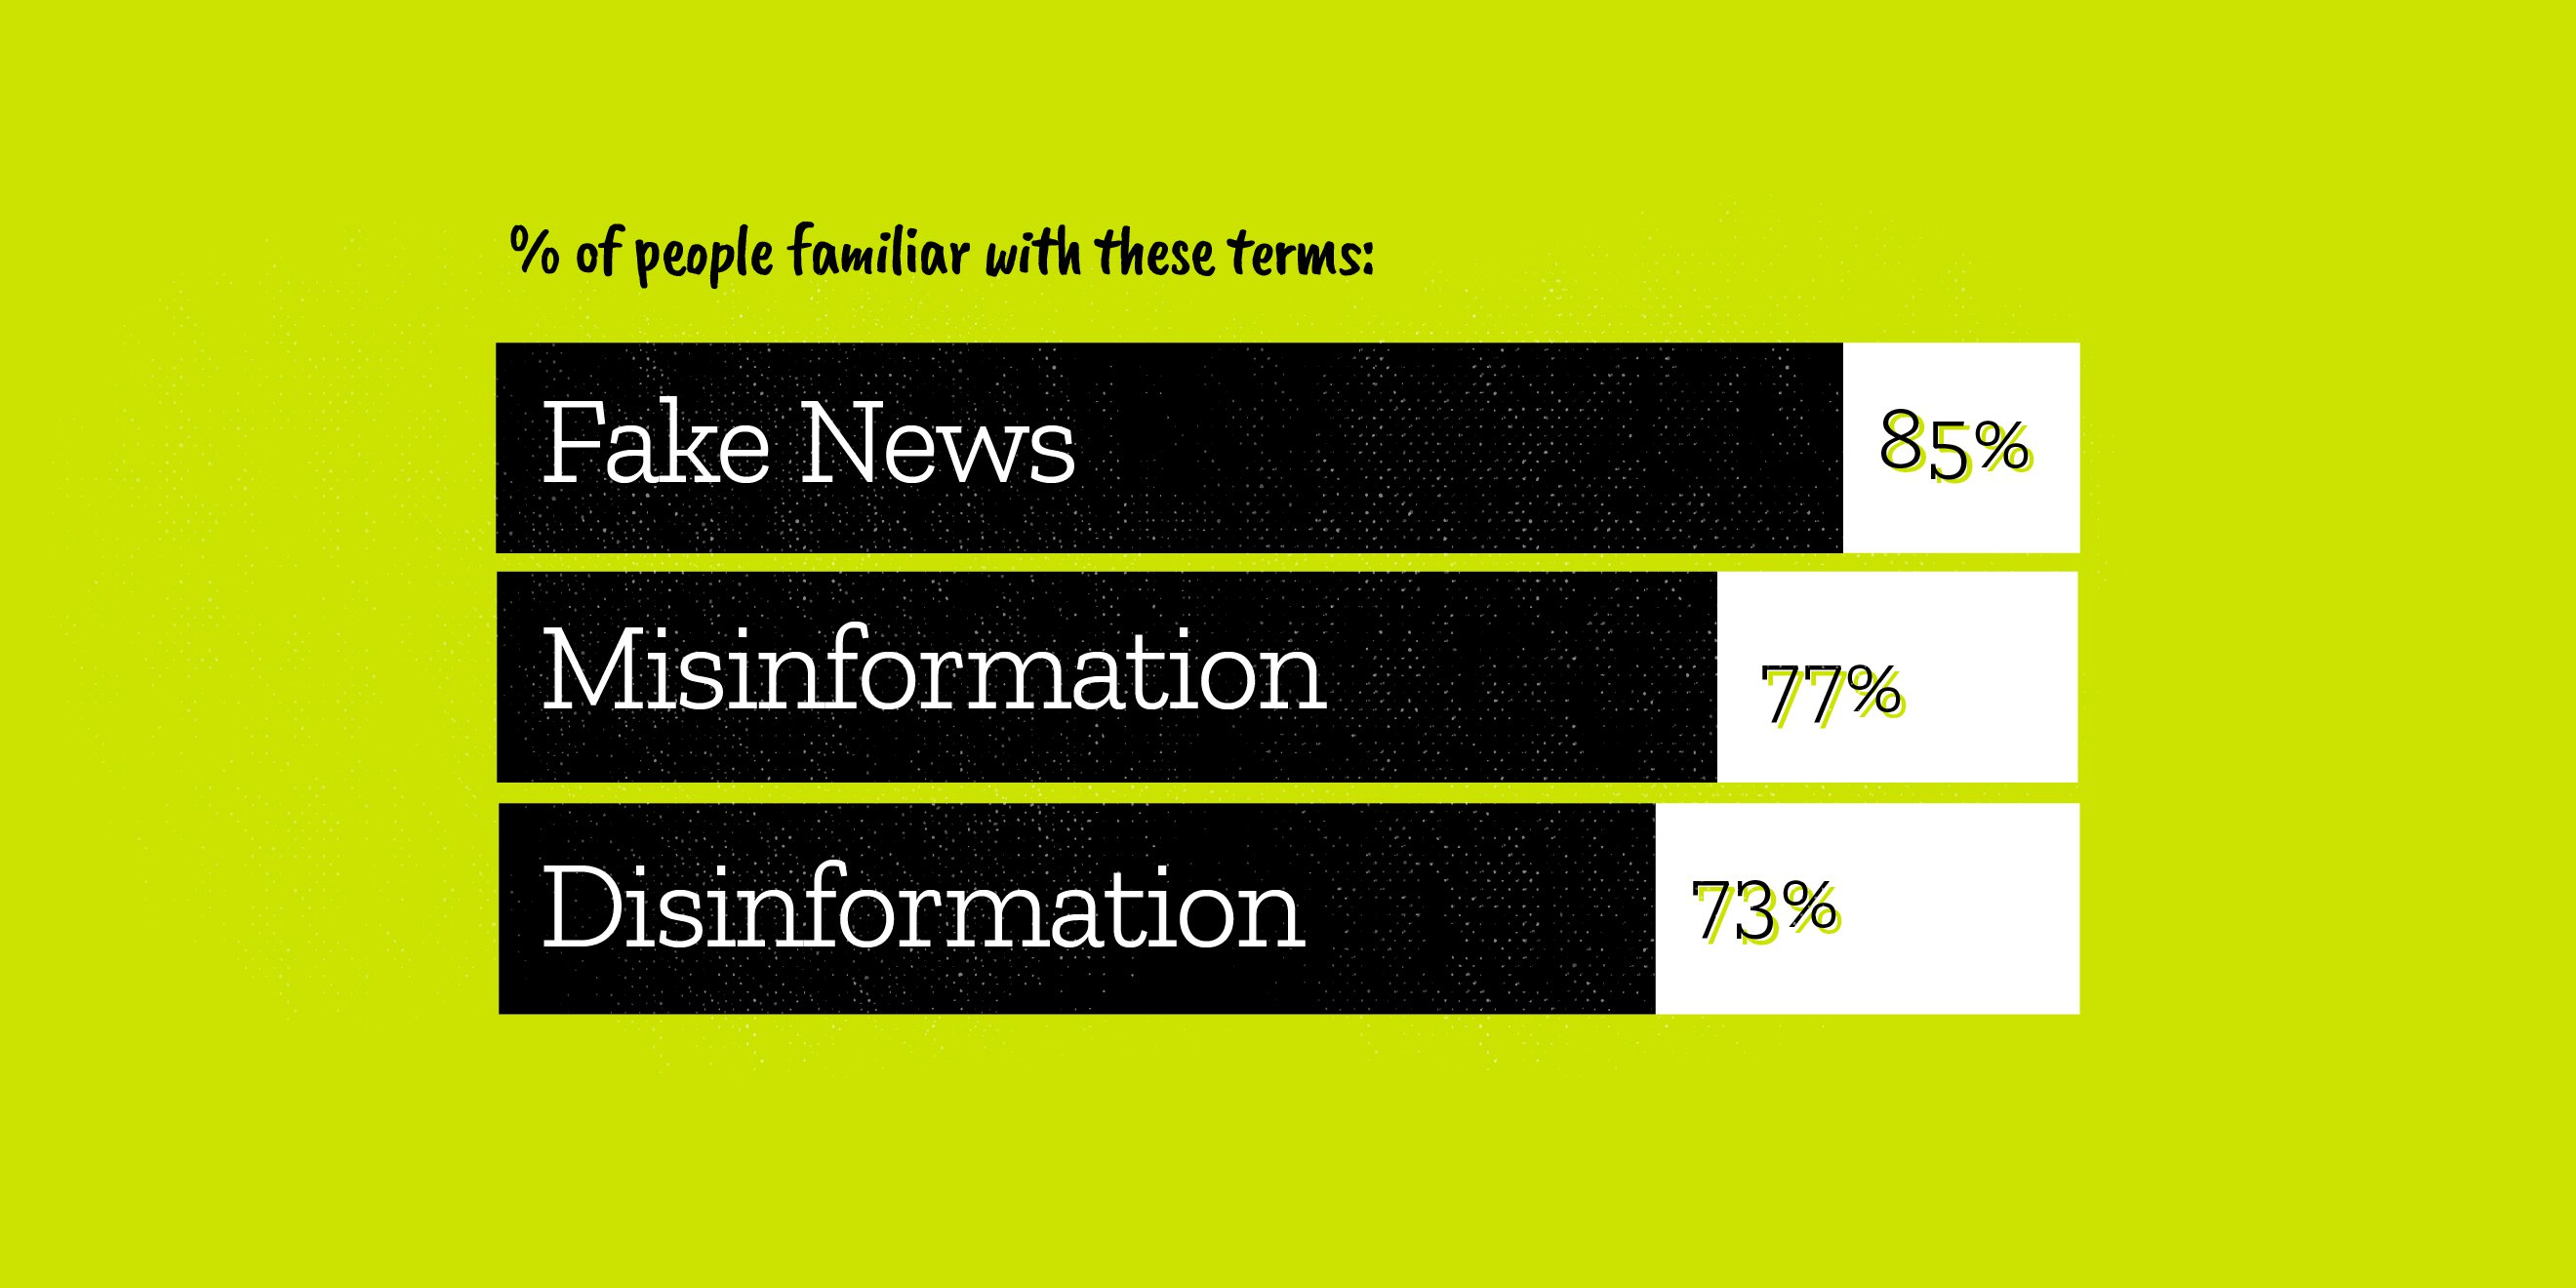 People said they were 85% familiar with the term fake news. People said there were 77% familiar with the term misinformation. People said there were 73% familiar with the term disinformation.